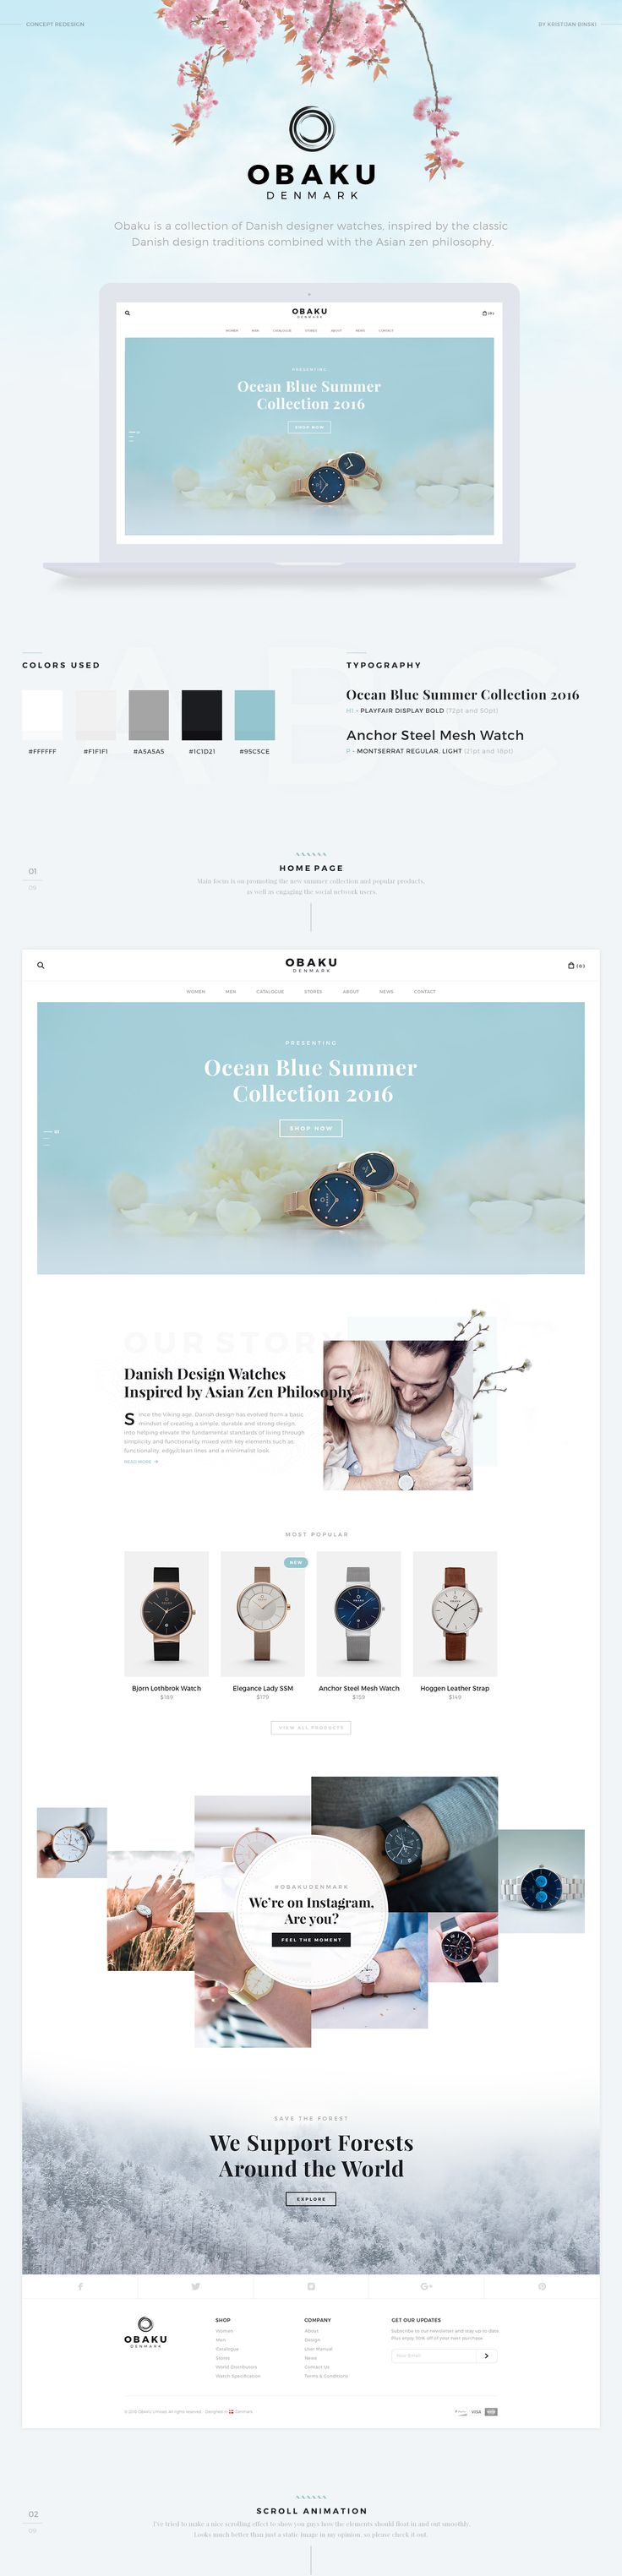 Since I bought a gift for my fiance, an awesome Obaku watch, we are both amazed by the simplicity and elegance of the product itself. However, after we did some research online, we figured their website and logo could be improved. So I tried to apply the …